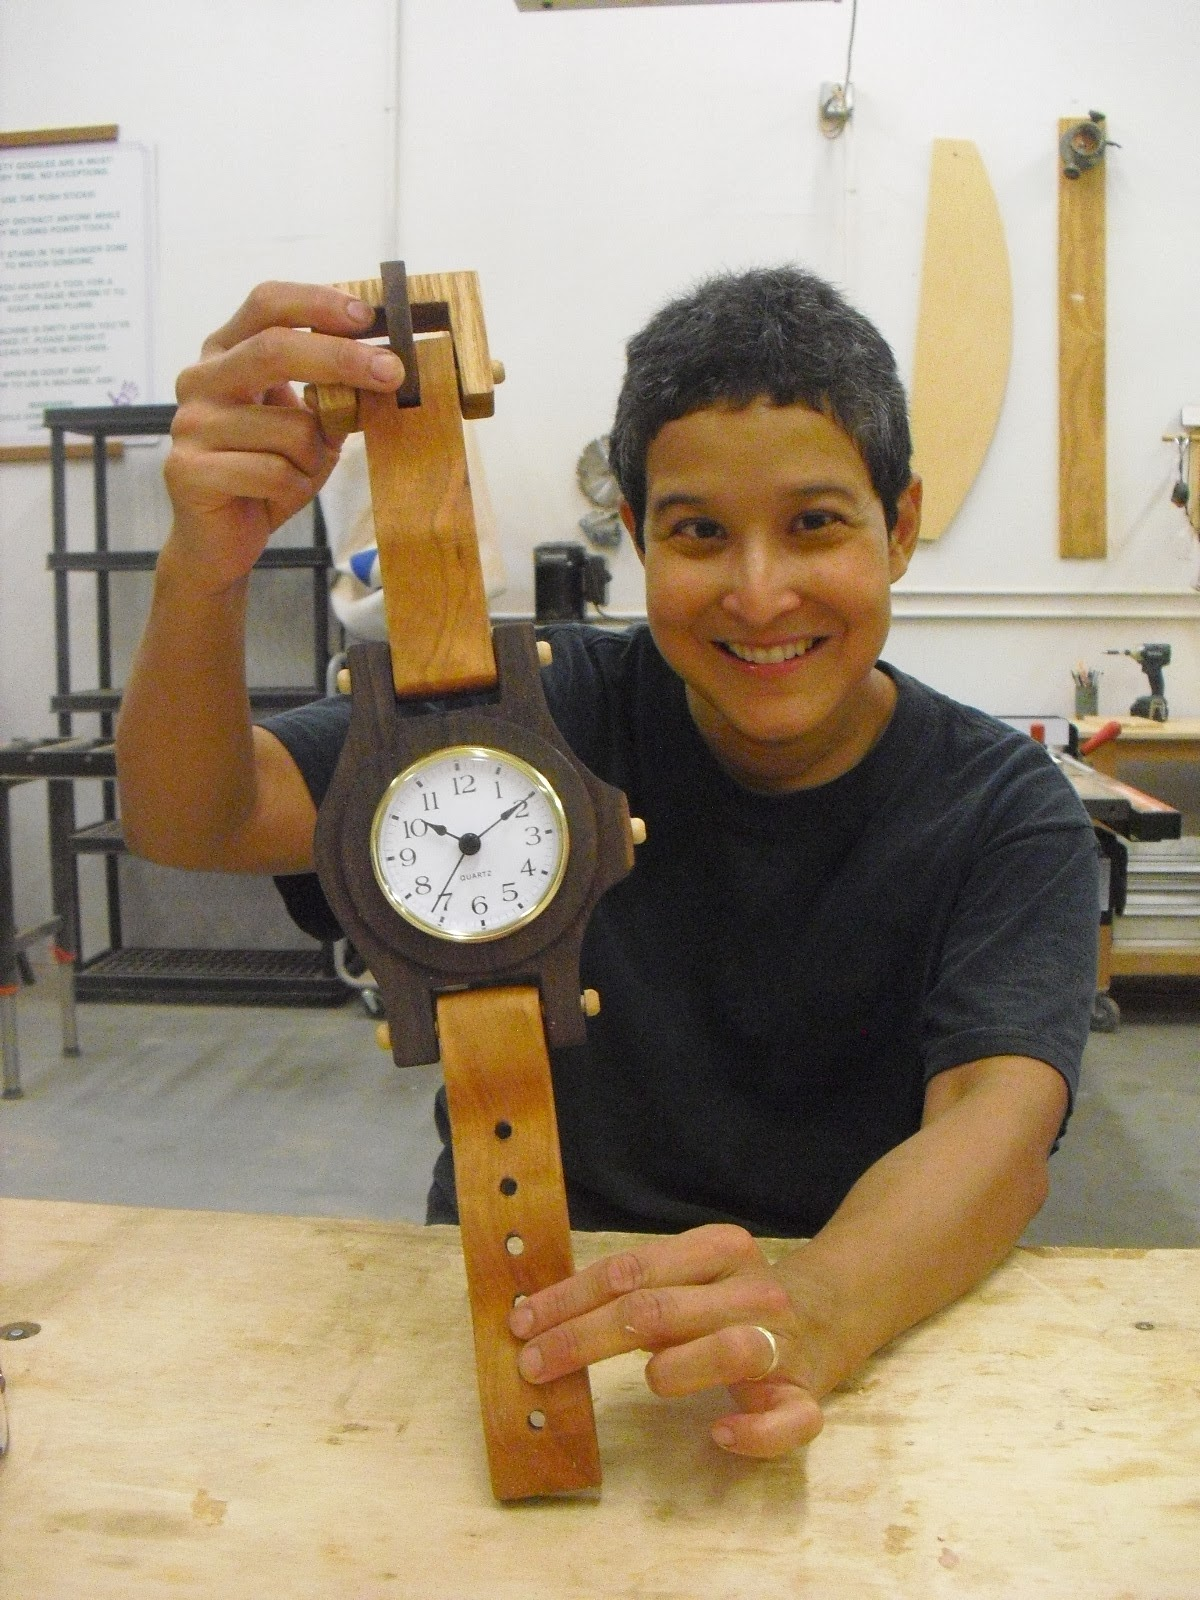 Wonderful Woodworking Classes In Las Vegas Hereu0026#39;s The 2018 Schedule!